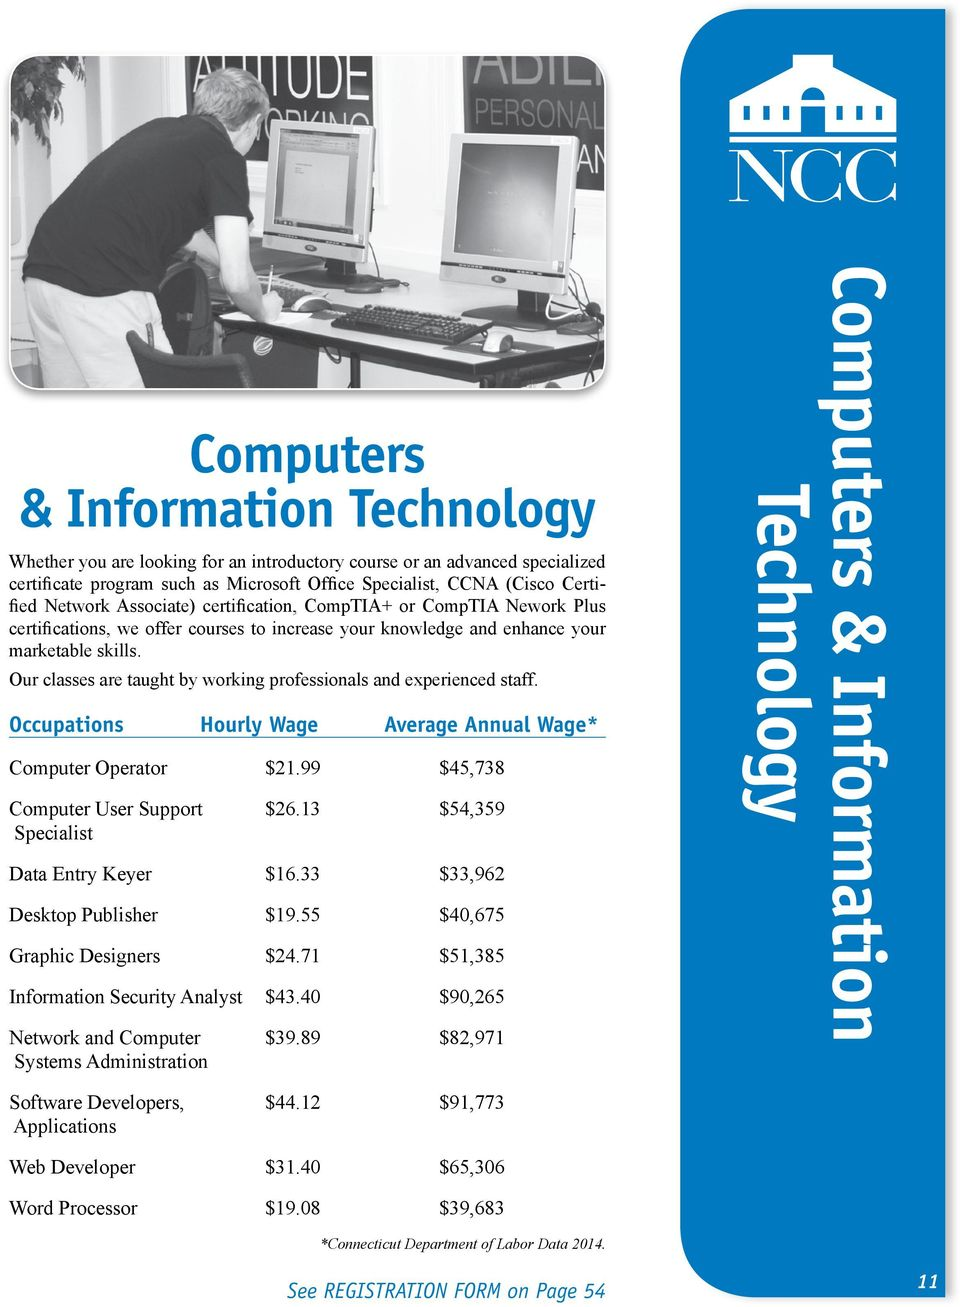 Our classes are taught by working professionals and experienced staff. Occupations Hourly Wage Average Annual Wage* Computer Operator $21.99 $45,738 Computer User Support $26.